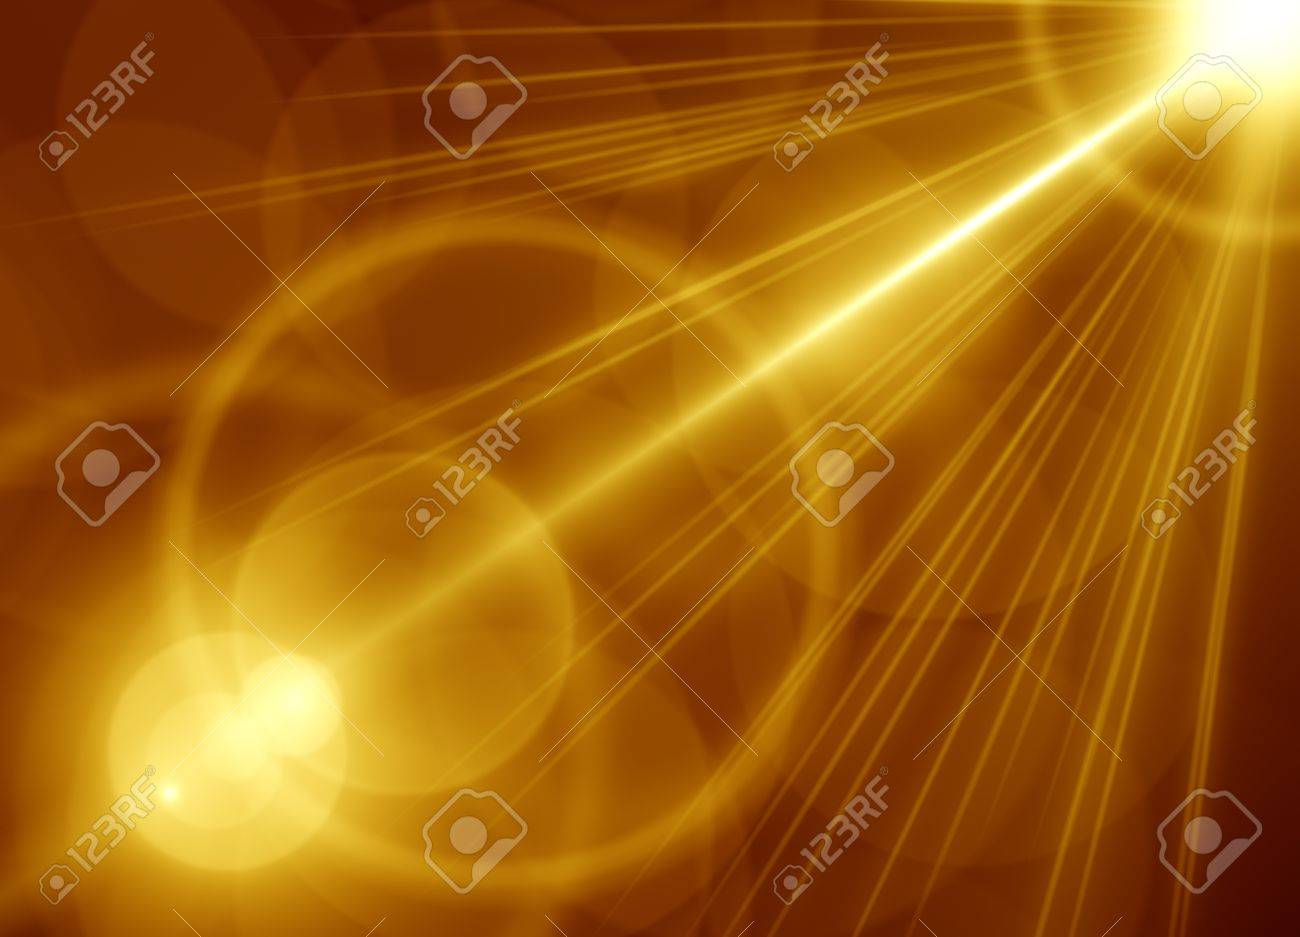 Golden abstract background Stock Photo - 16484896